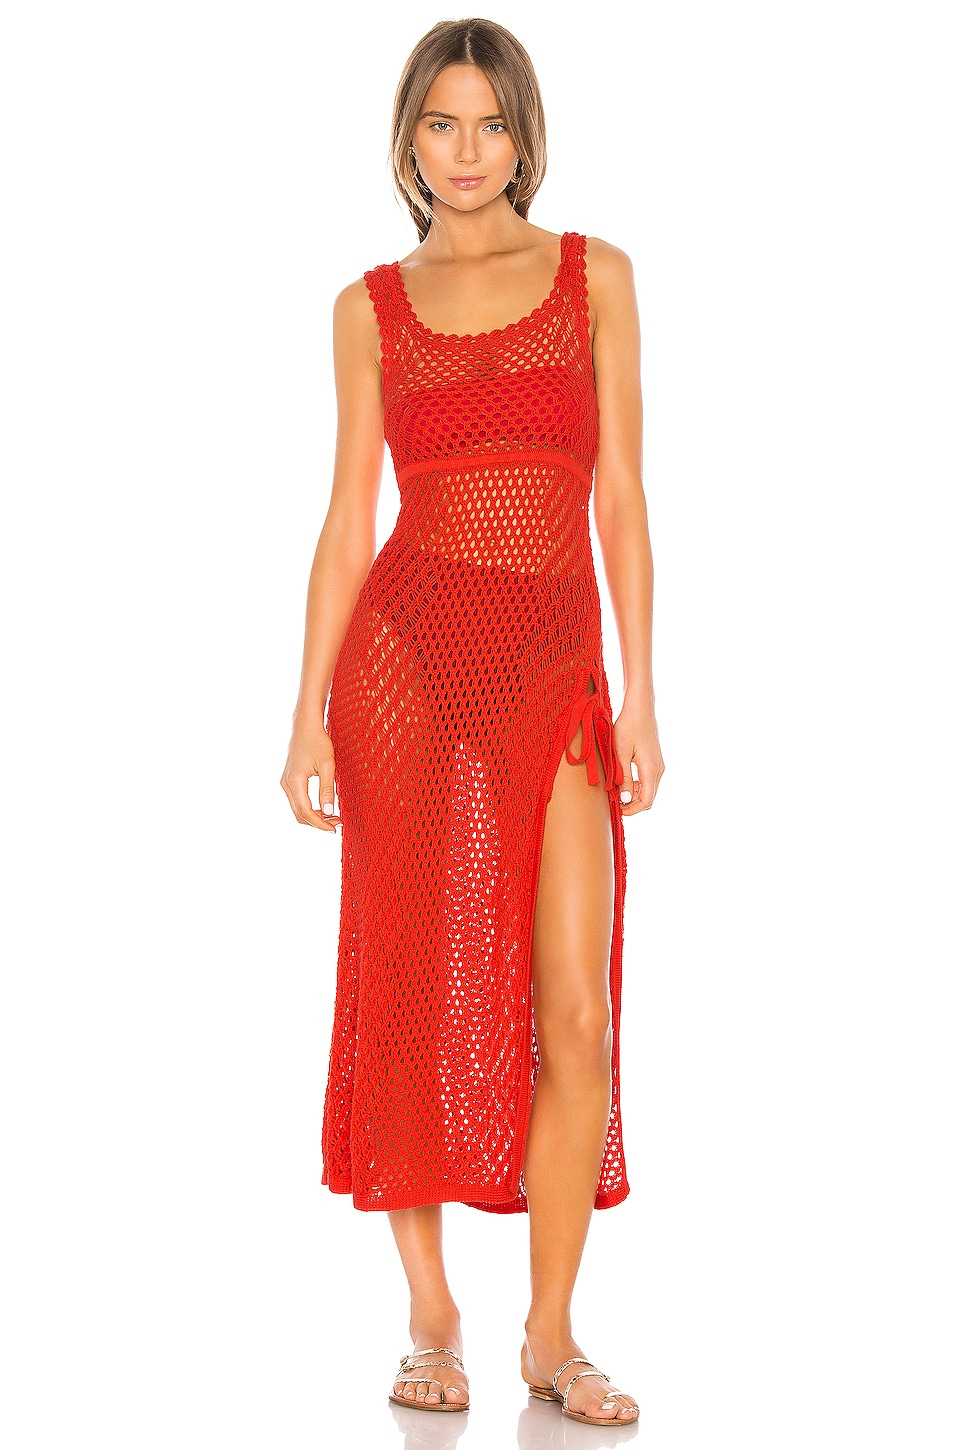 Camila Coelho Athena Crochet Dress in Coral Red